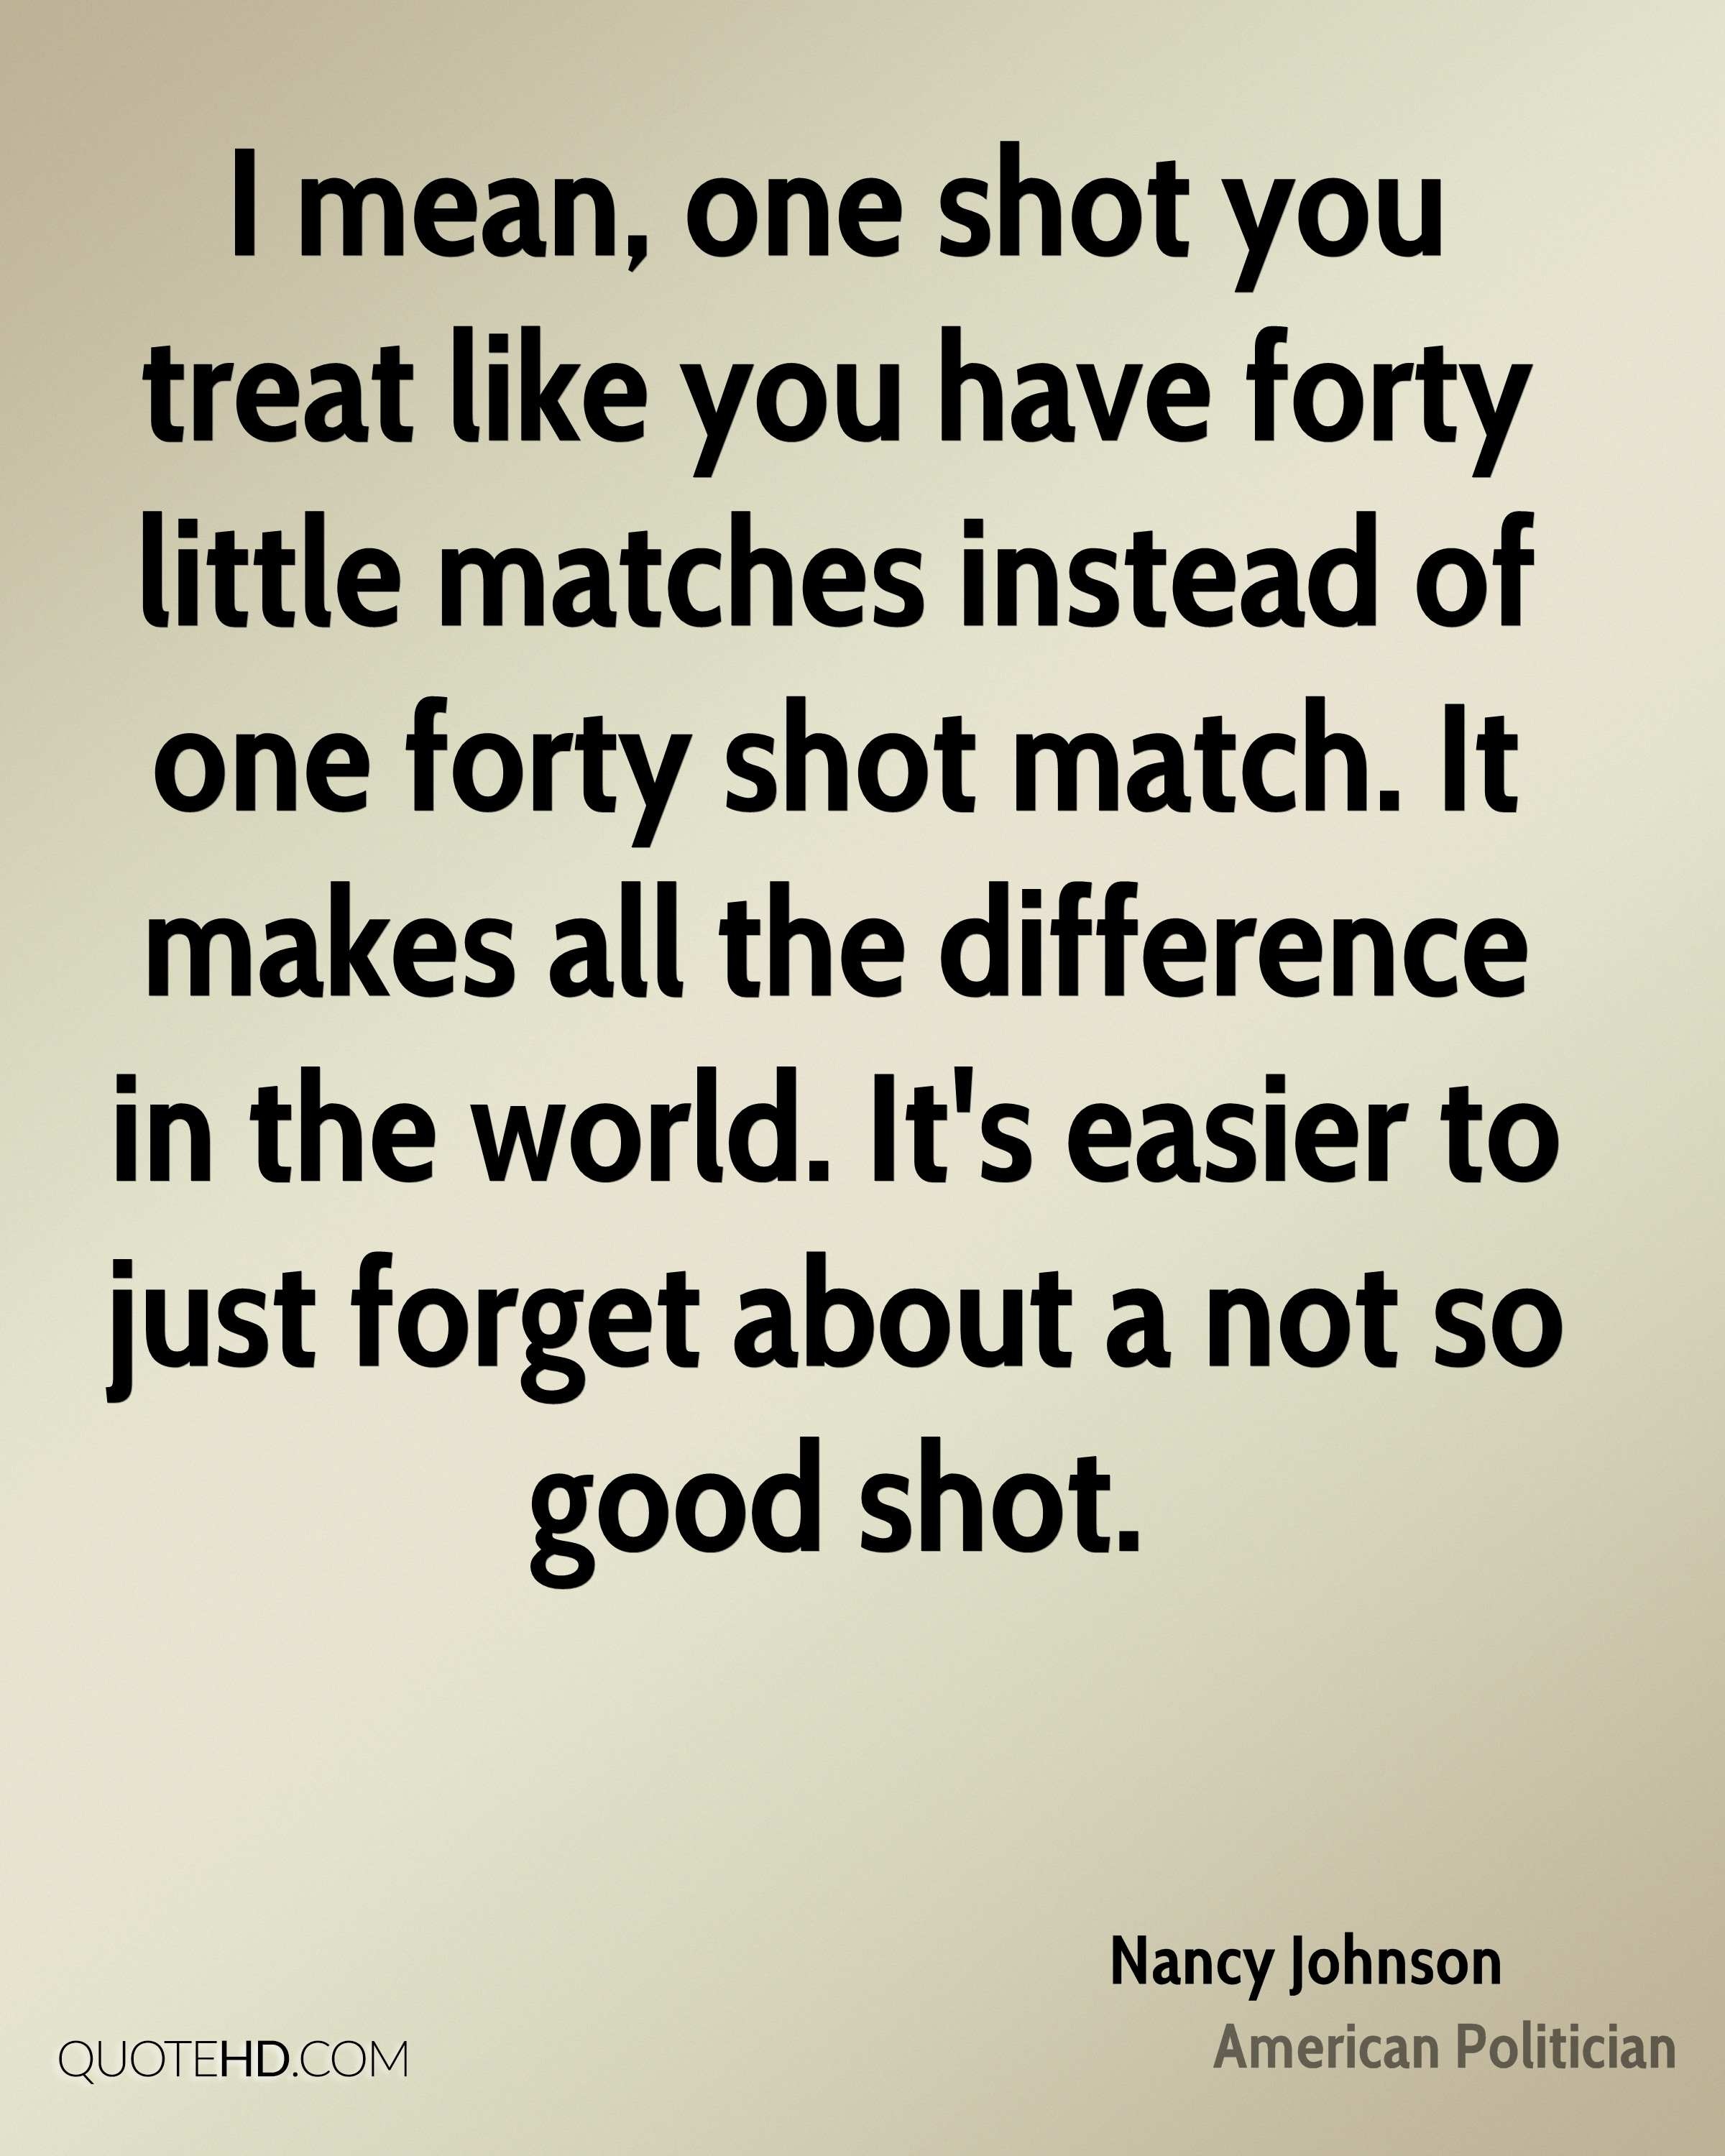 I mean, one shot you treat like you have forty little matches instead of one forty shot match. It makes all the difference in the world. It's easier to just forget about a not so good shot.